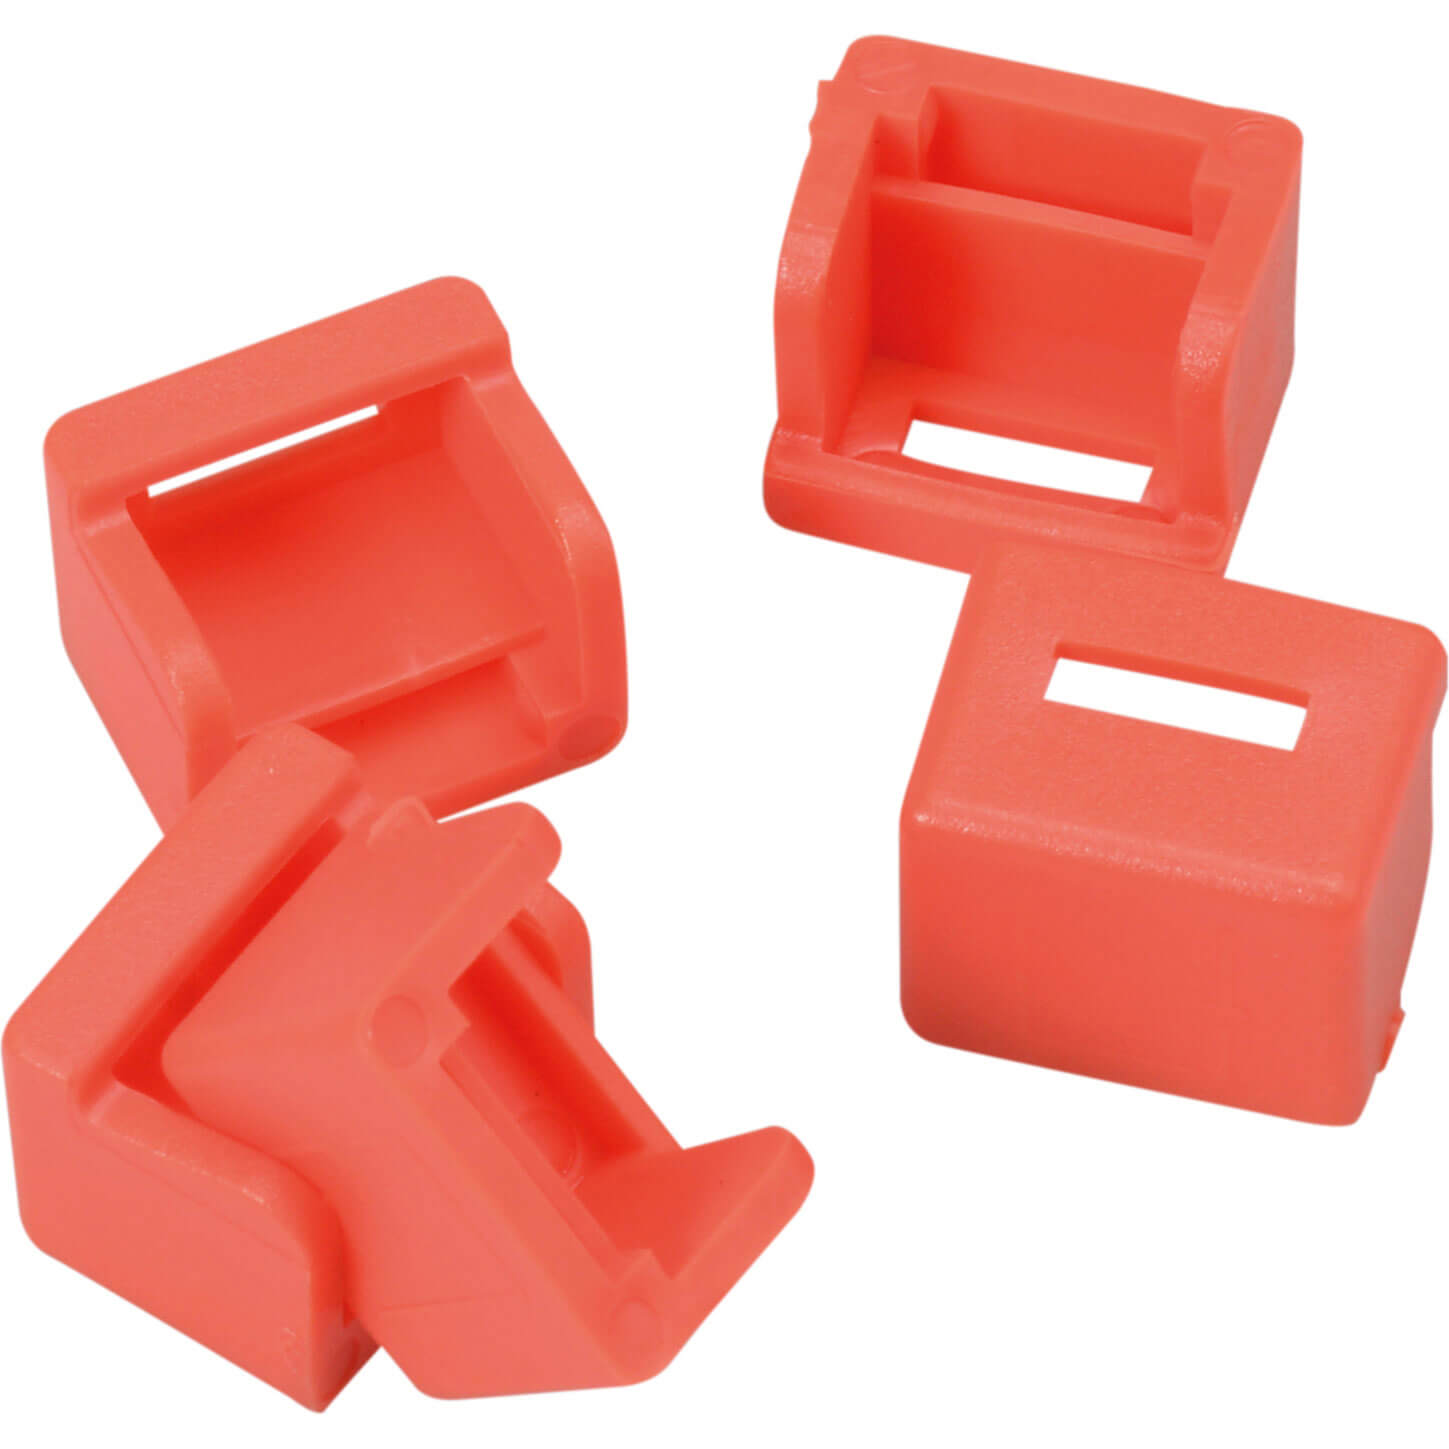 Image of Tacwise 0849 Spare Nose Pieces For 191EL Pack of 5